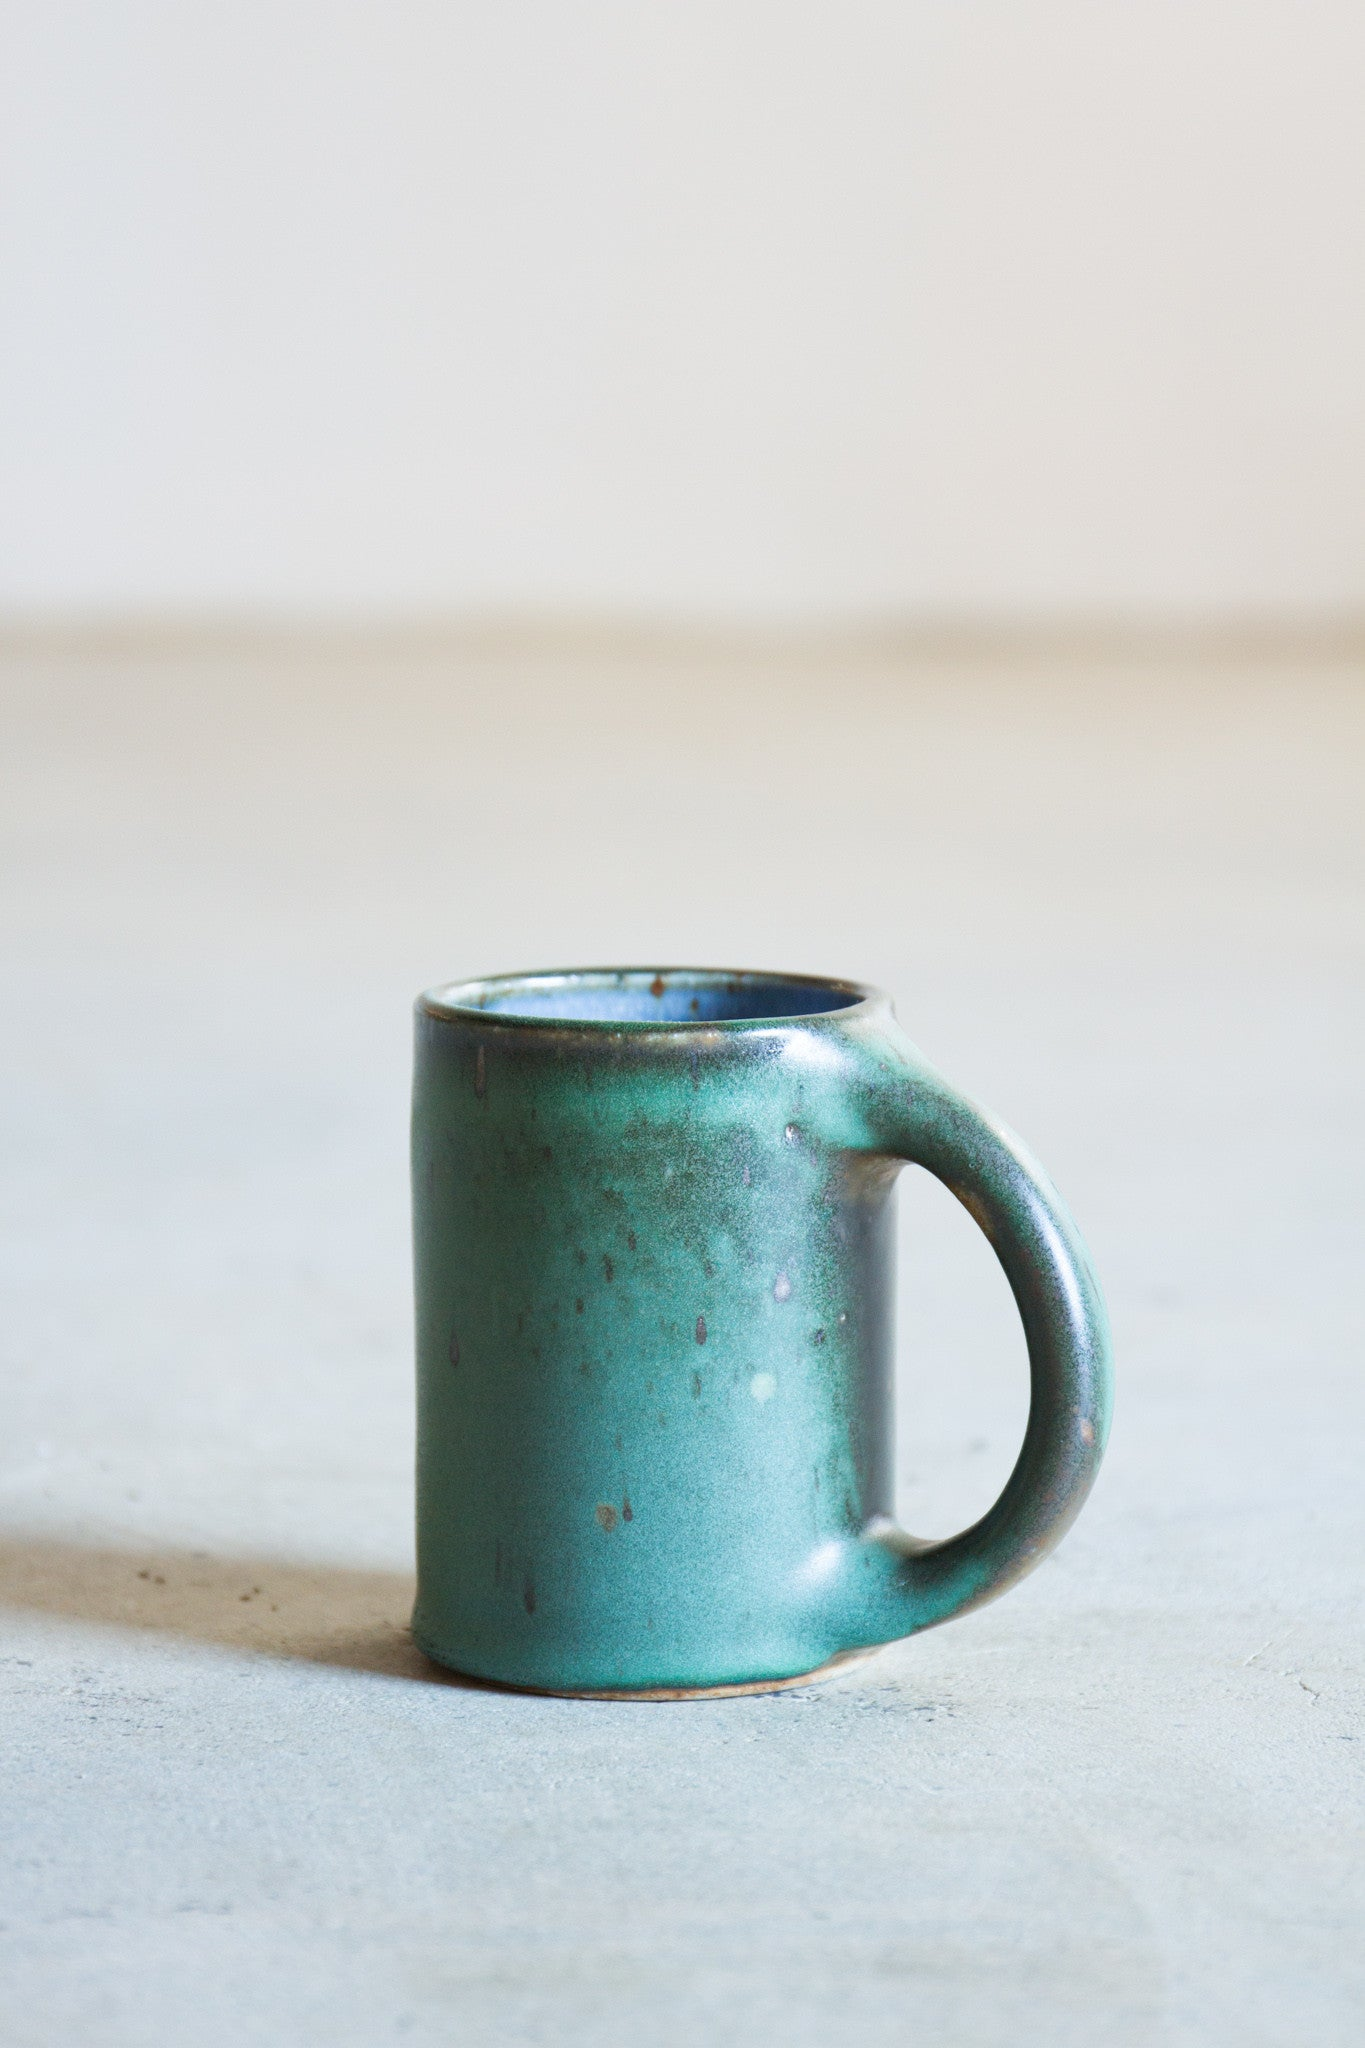 Kim Hau Green Coffee Mug